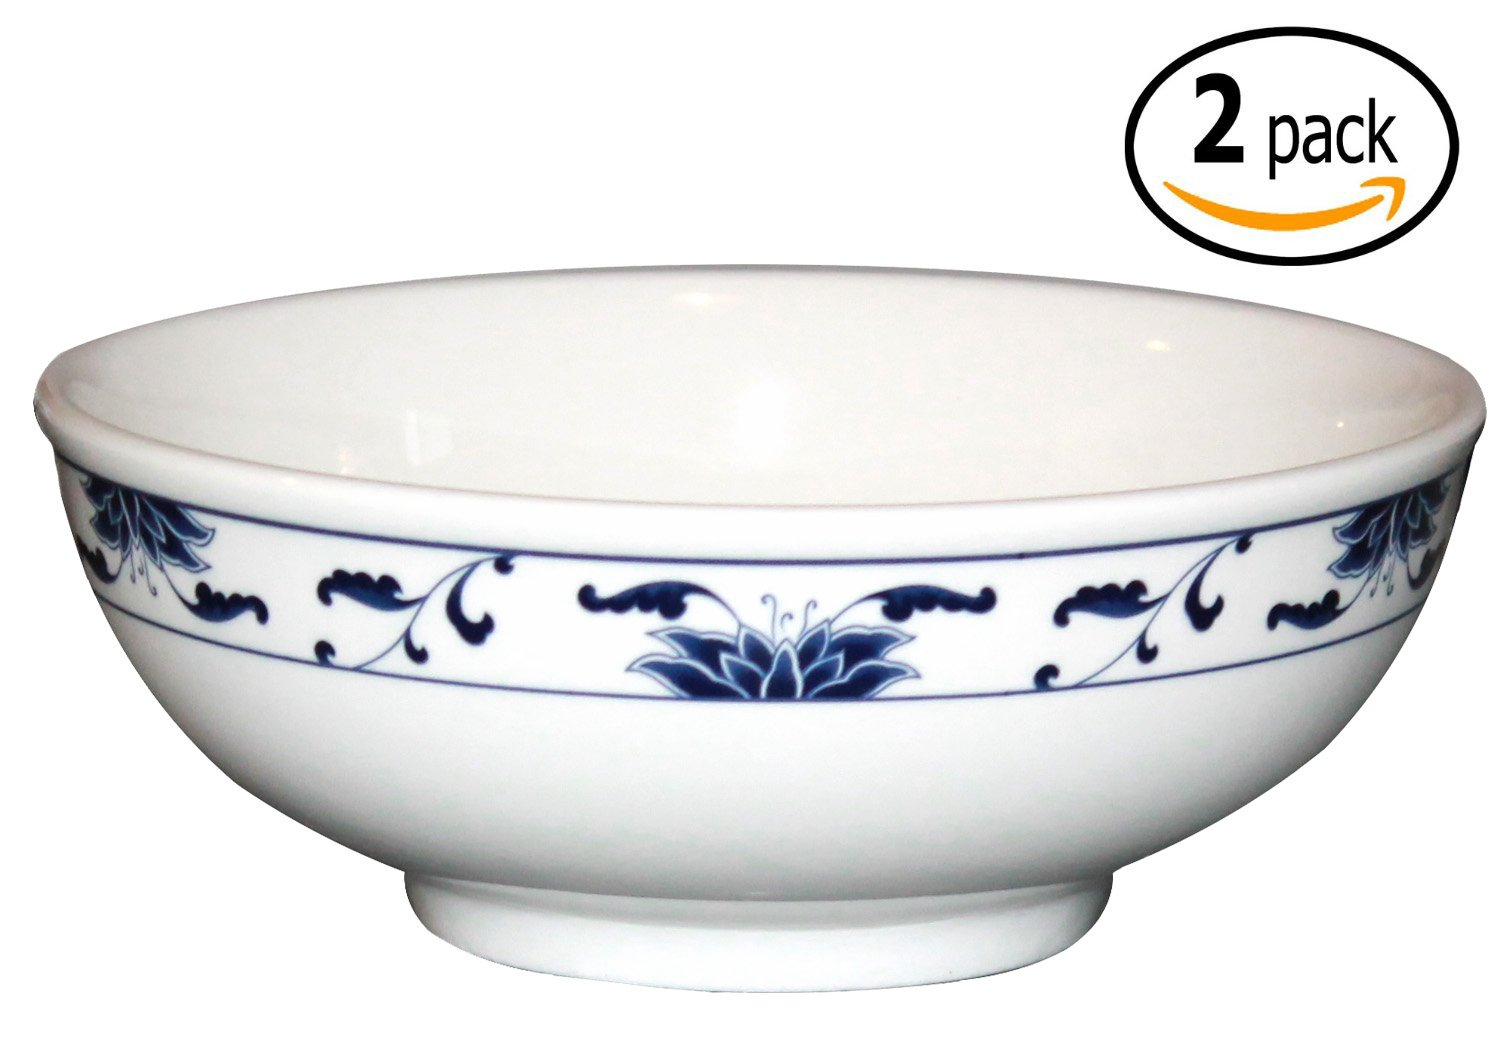 Cameo China Porcelain Bowls with Pan Scraper, Blue Lotus Design, White Ivory, Set of 2 (8.50 Inch, 48 Ounce)